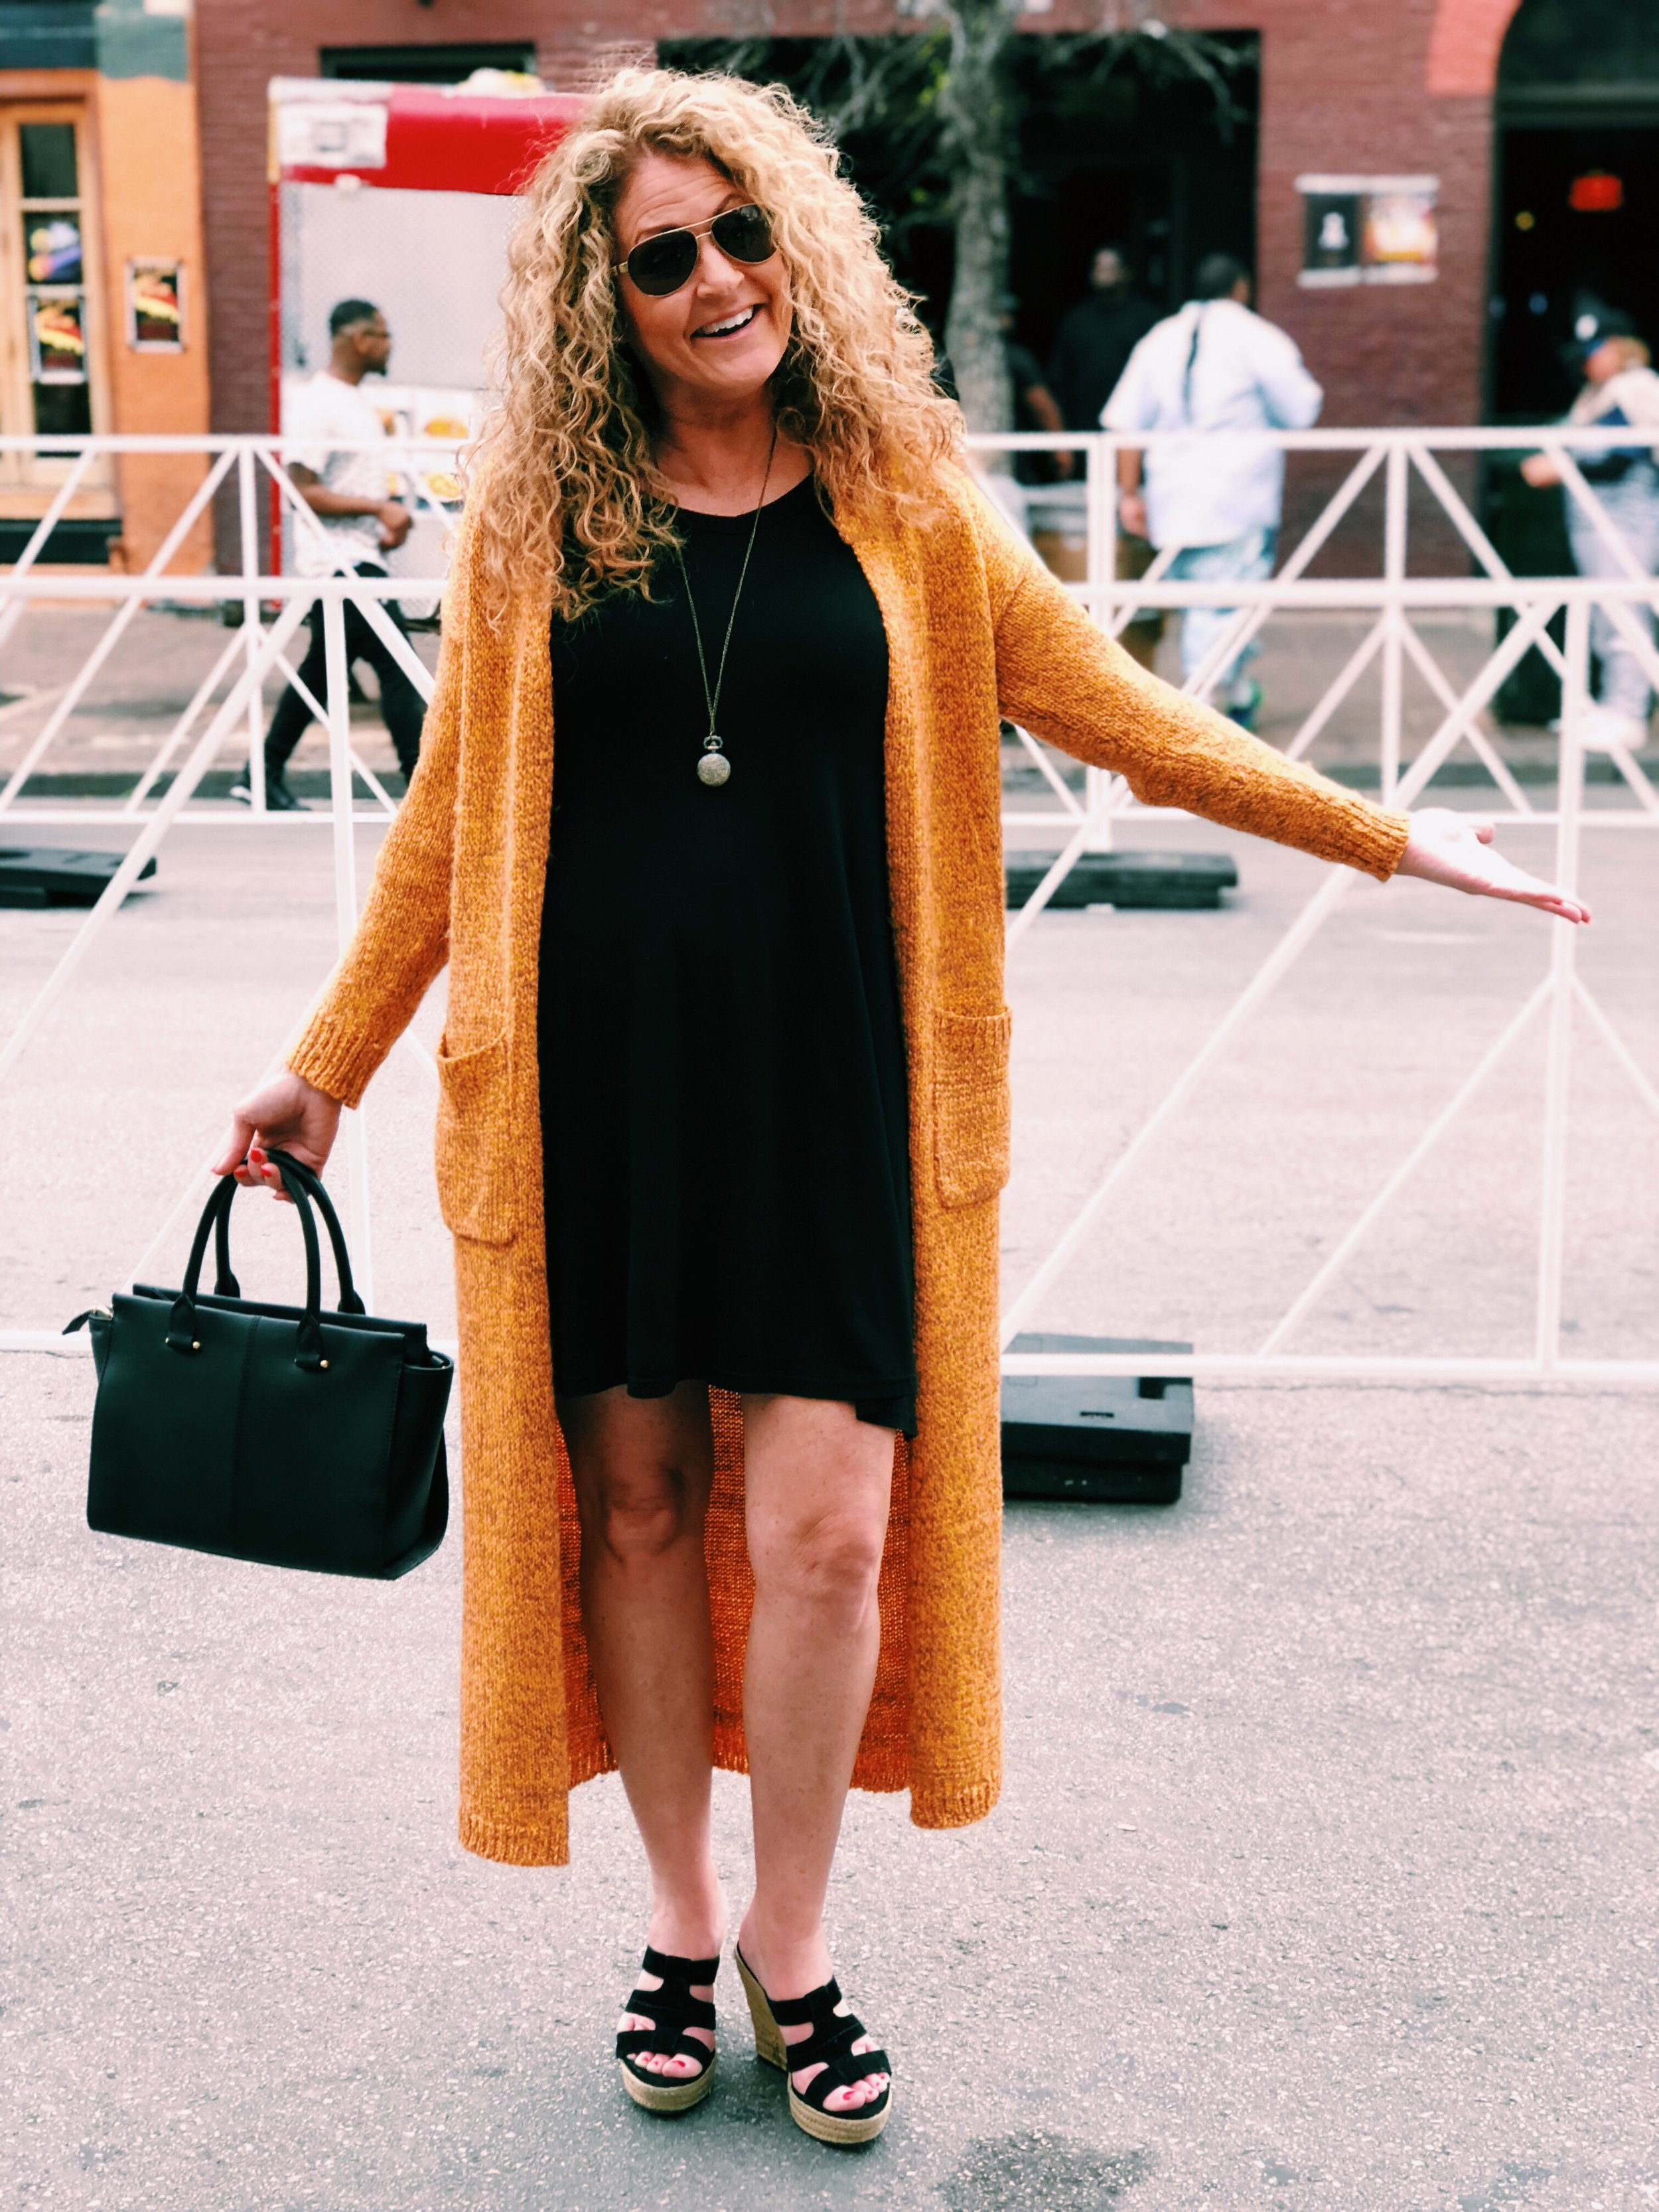 Greer Image Consulting - Blog - Women Dress For Their Unique Style At SXSW